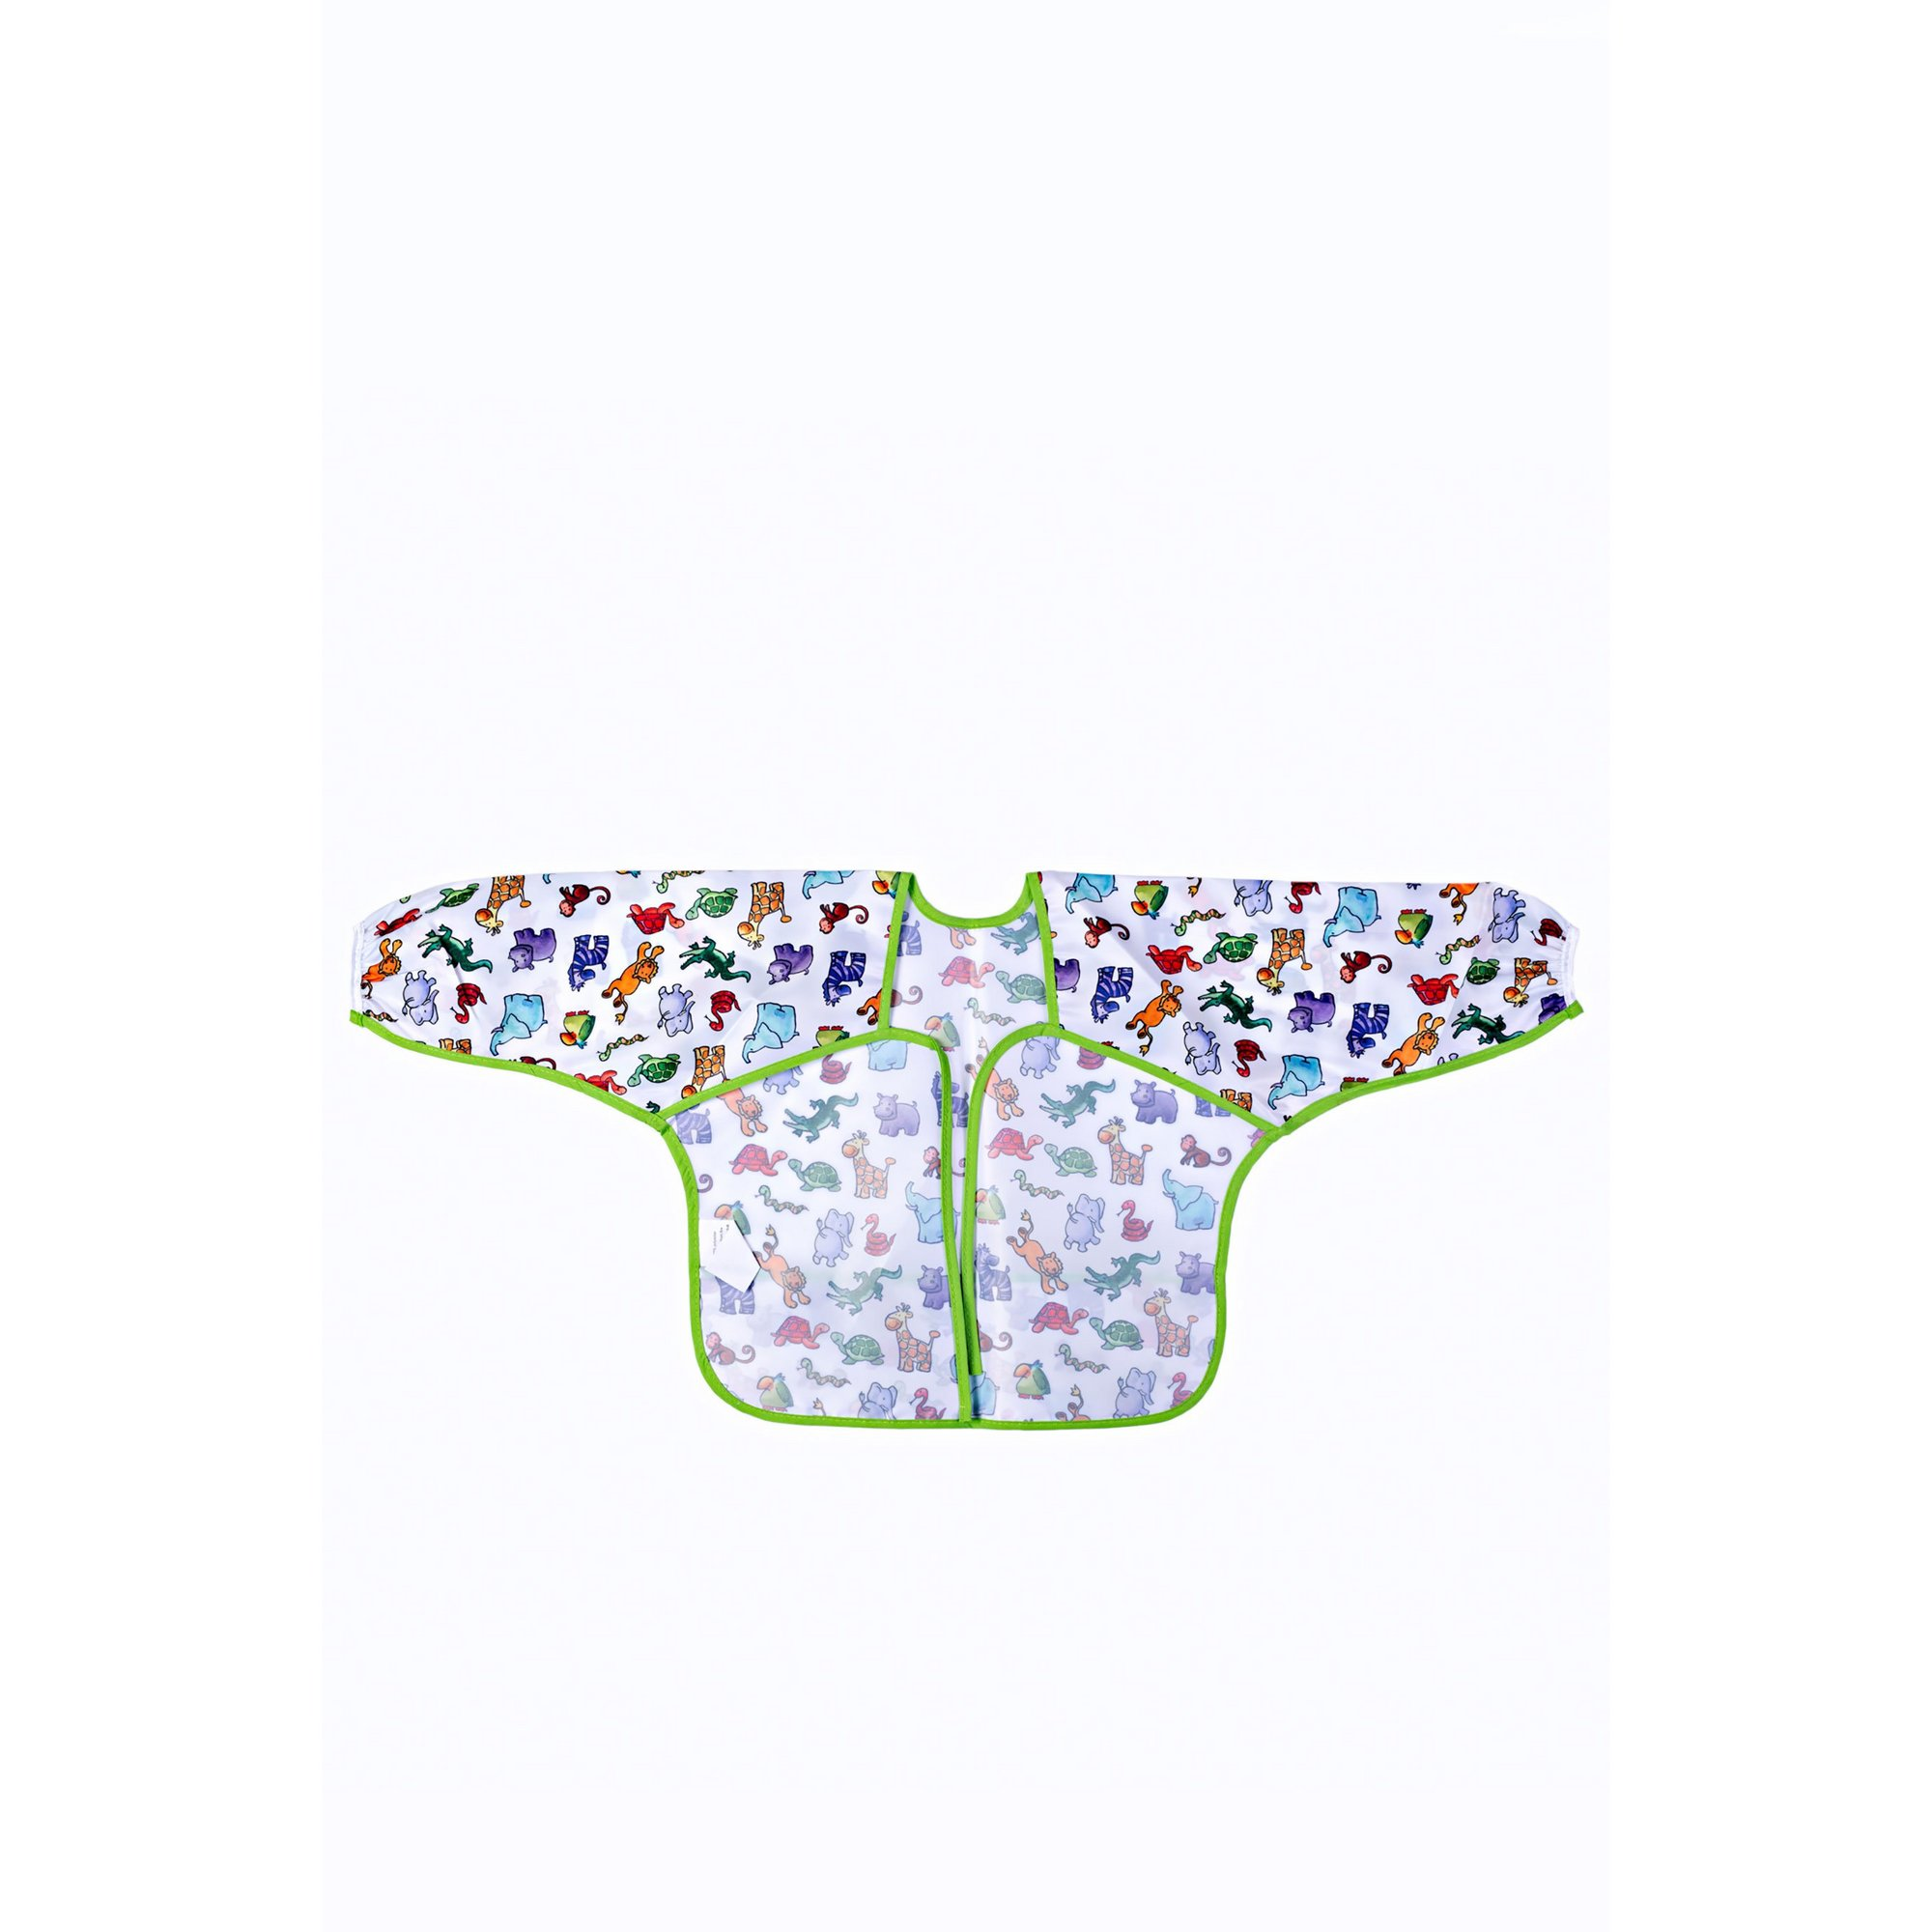 Image of Jungle Friends Sleeved Bib by Martin Gulliver